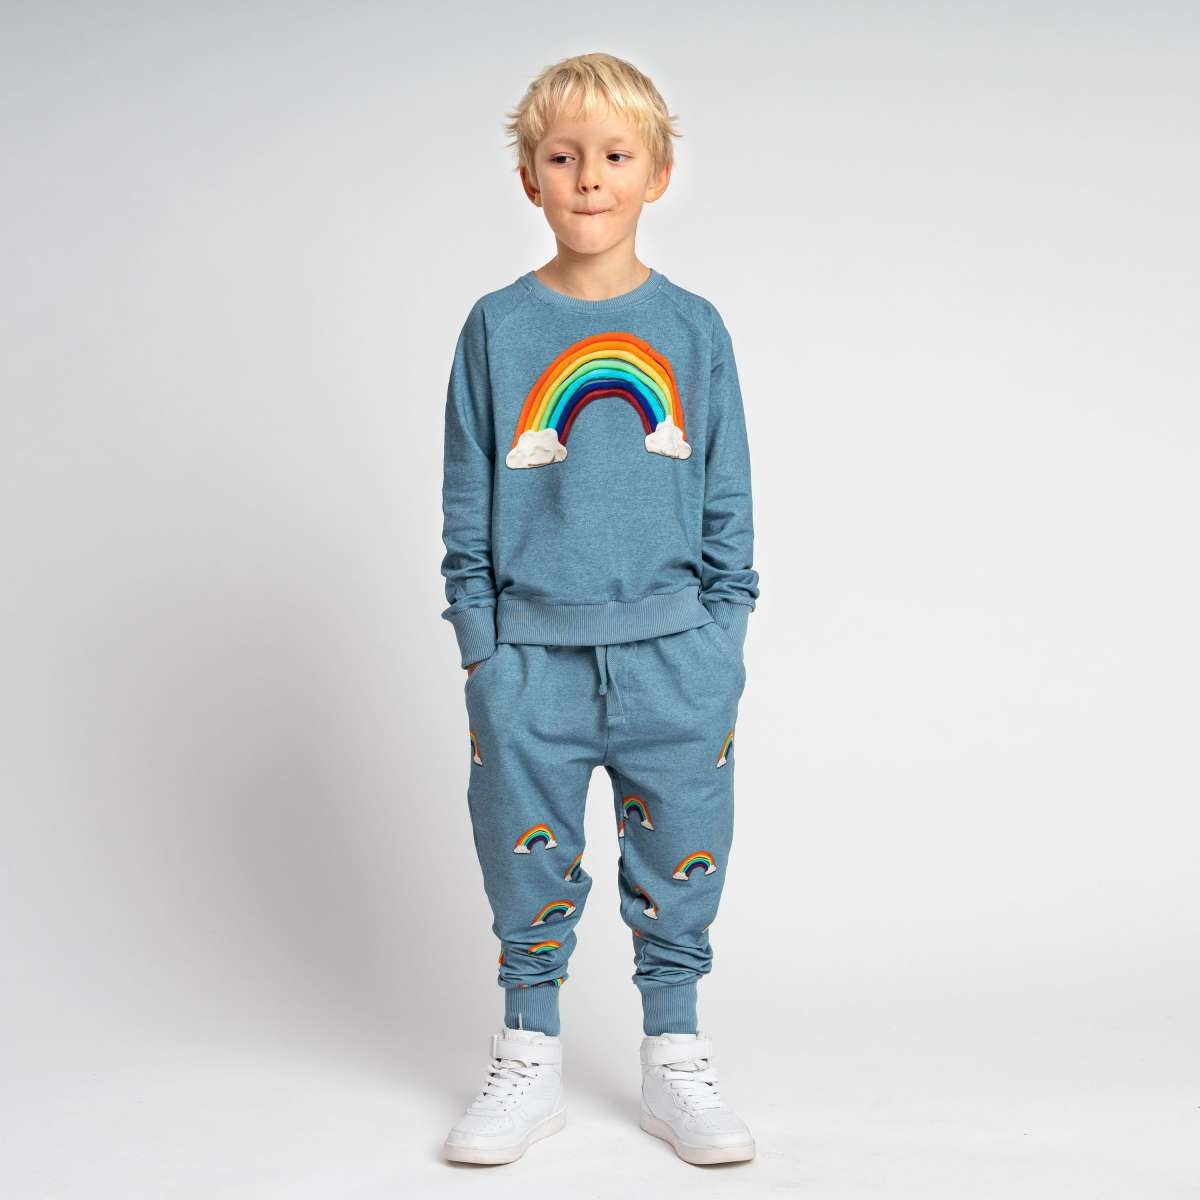 Sweatsuit - Rainbow - 2pc. - Sz 9/10 Yr-1